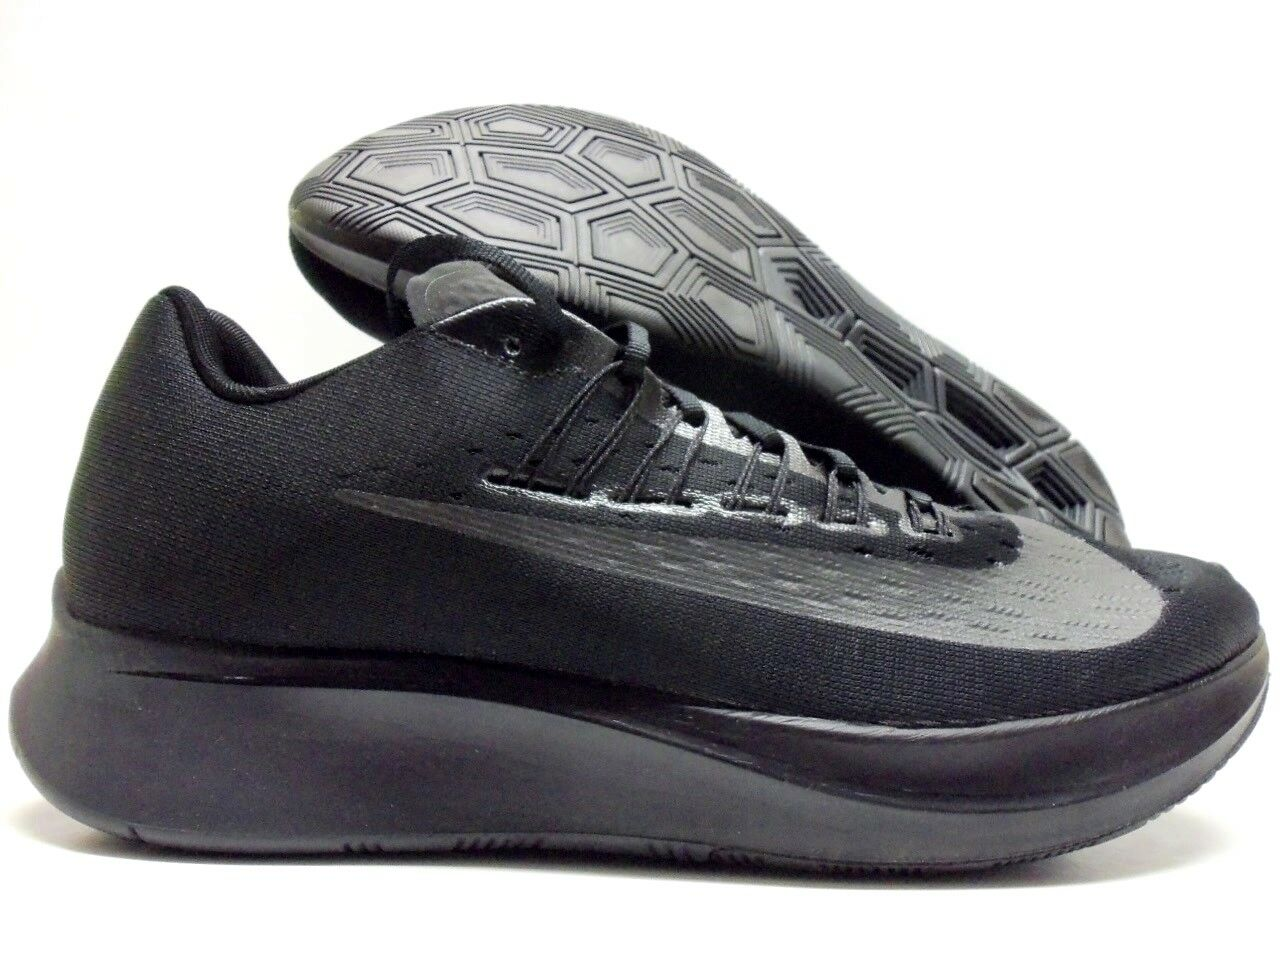 NIKE ZOOM FLY BLACK/BLACK-ANTHRACITE SIZE MEN'S 12 Price reduction Wild casual shoes